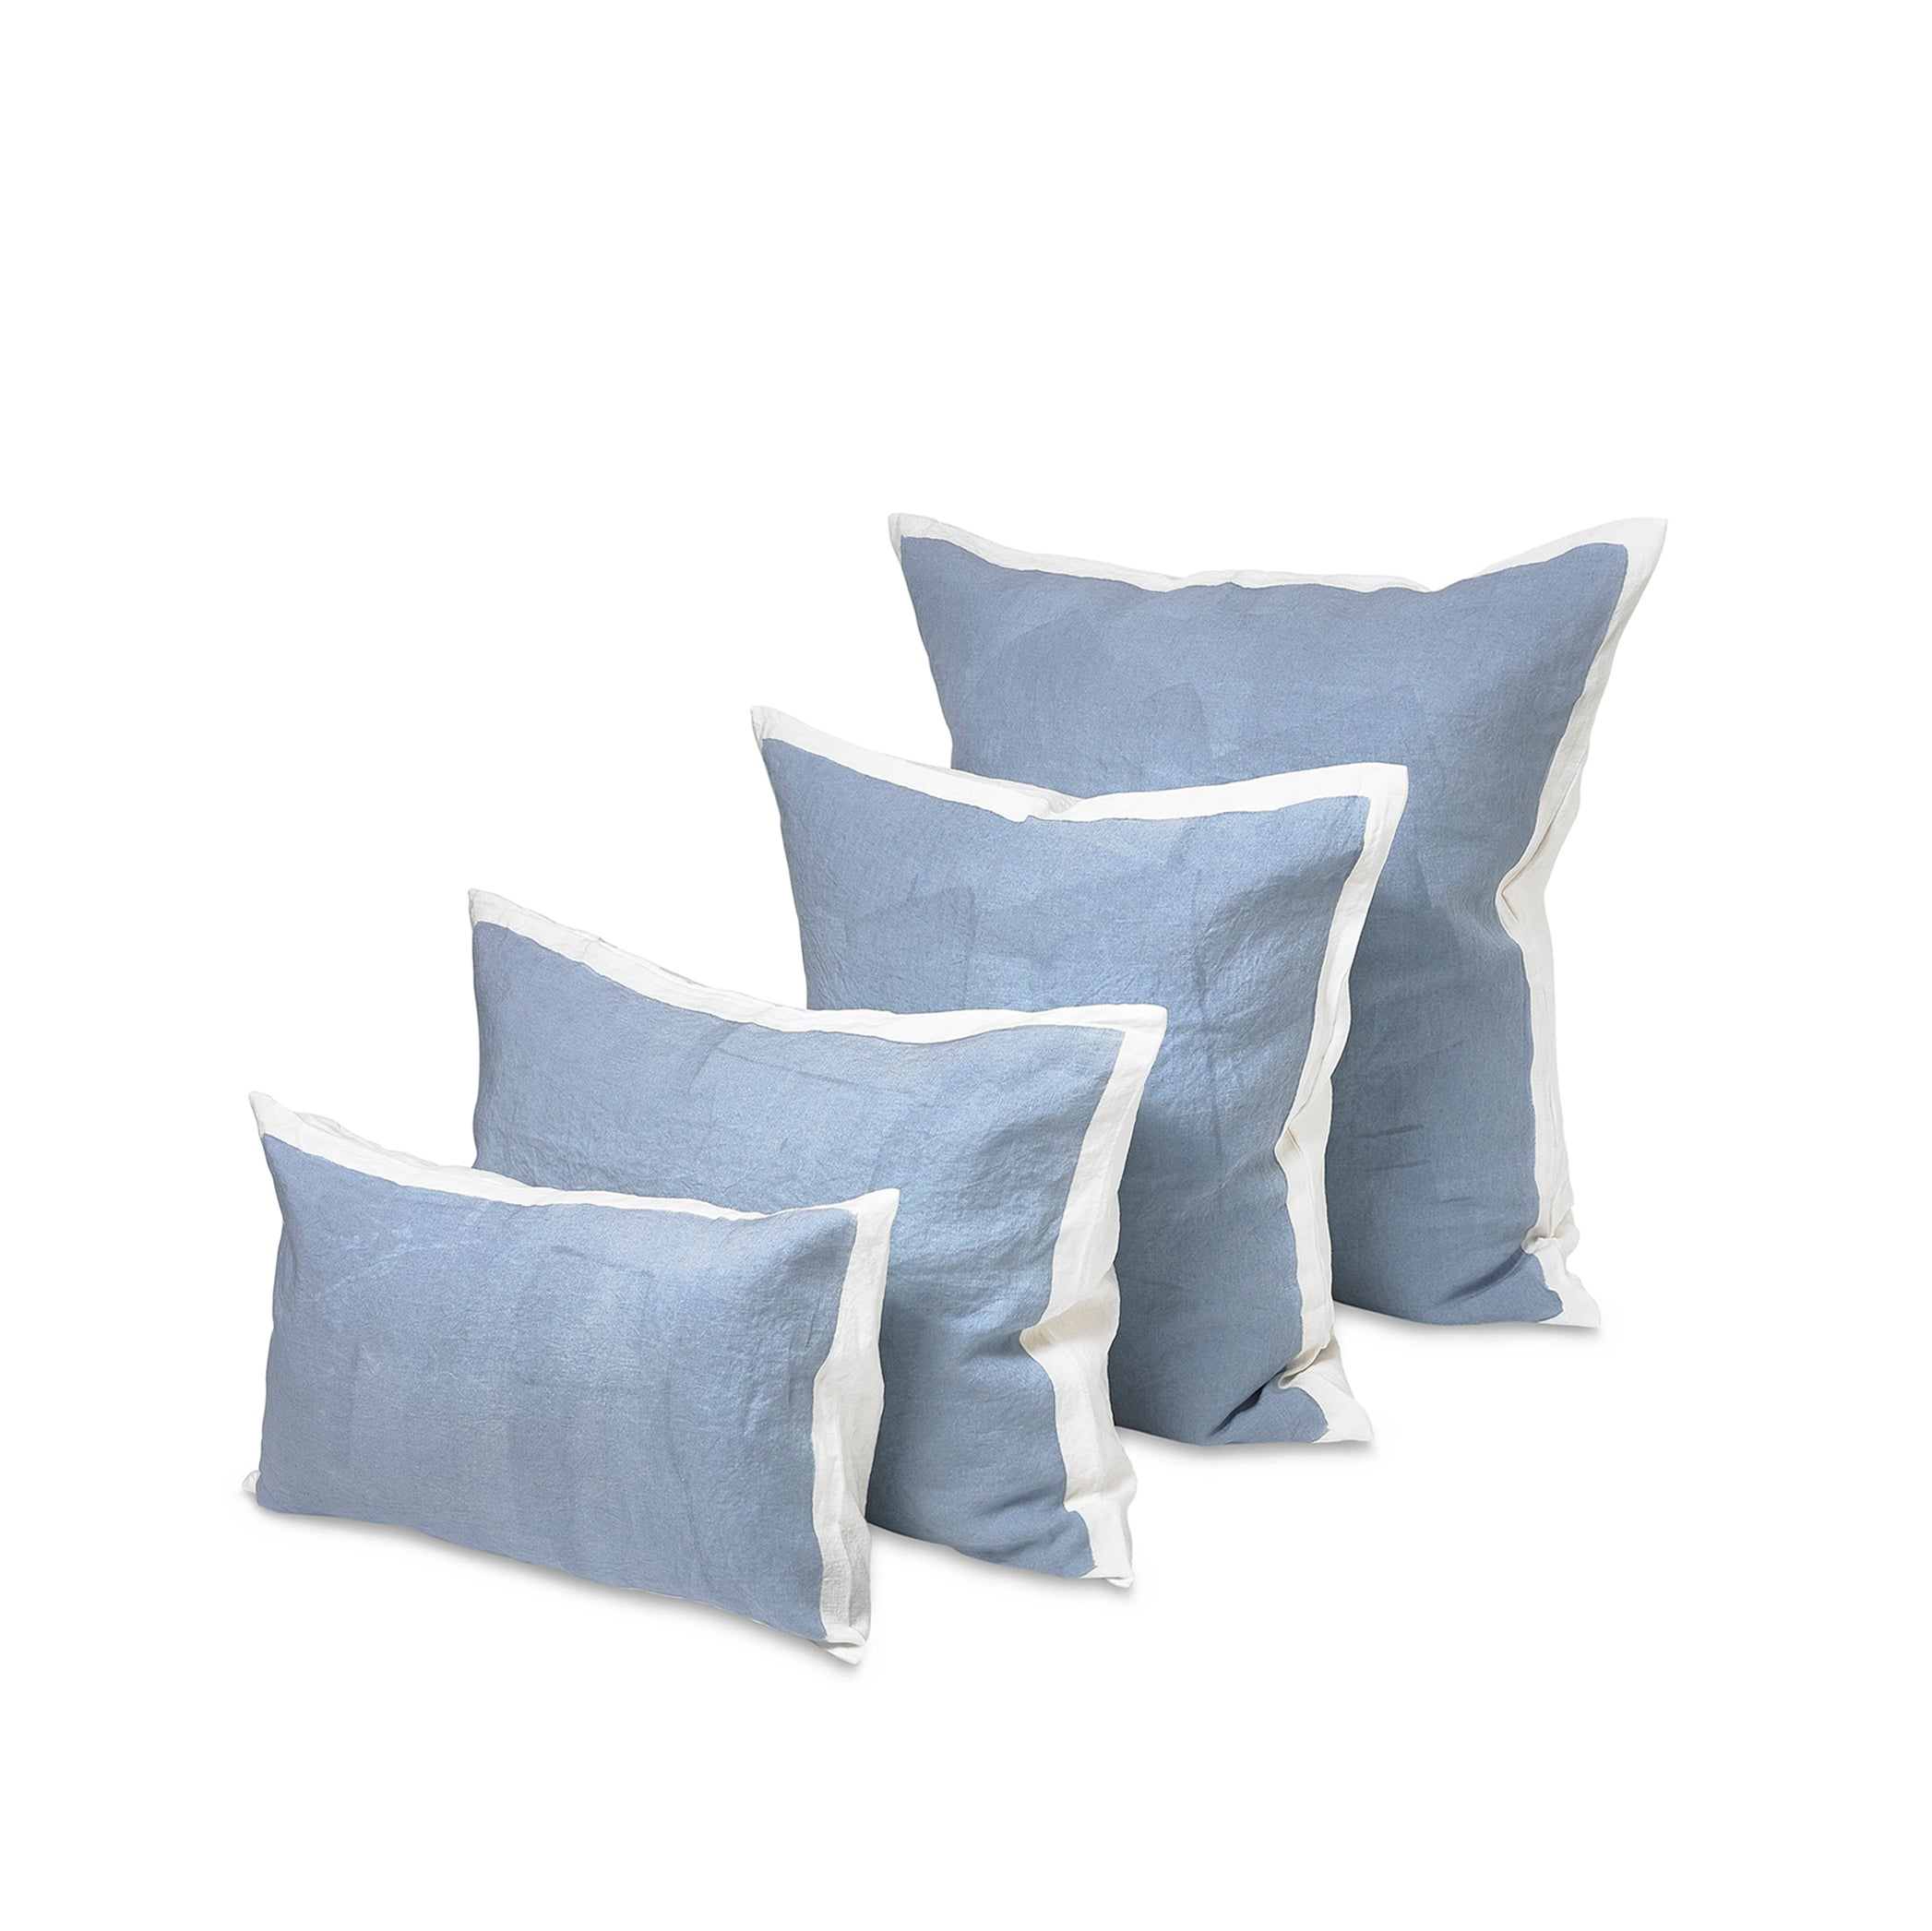 Hand Painted Linen Cushion in Pale Blue, 50cm x 30cm